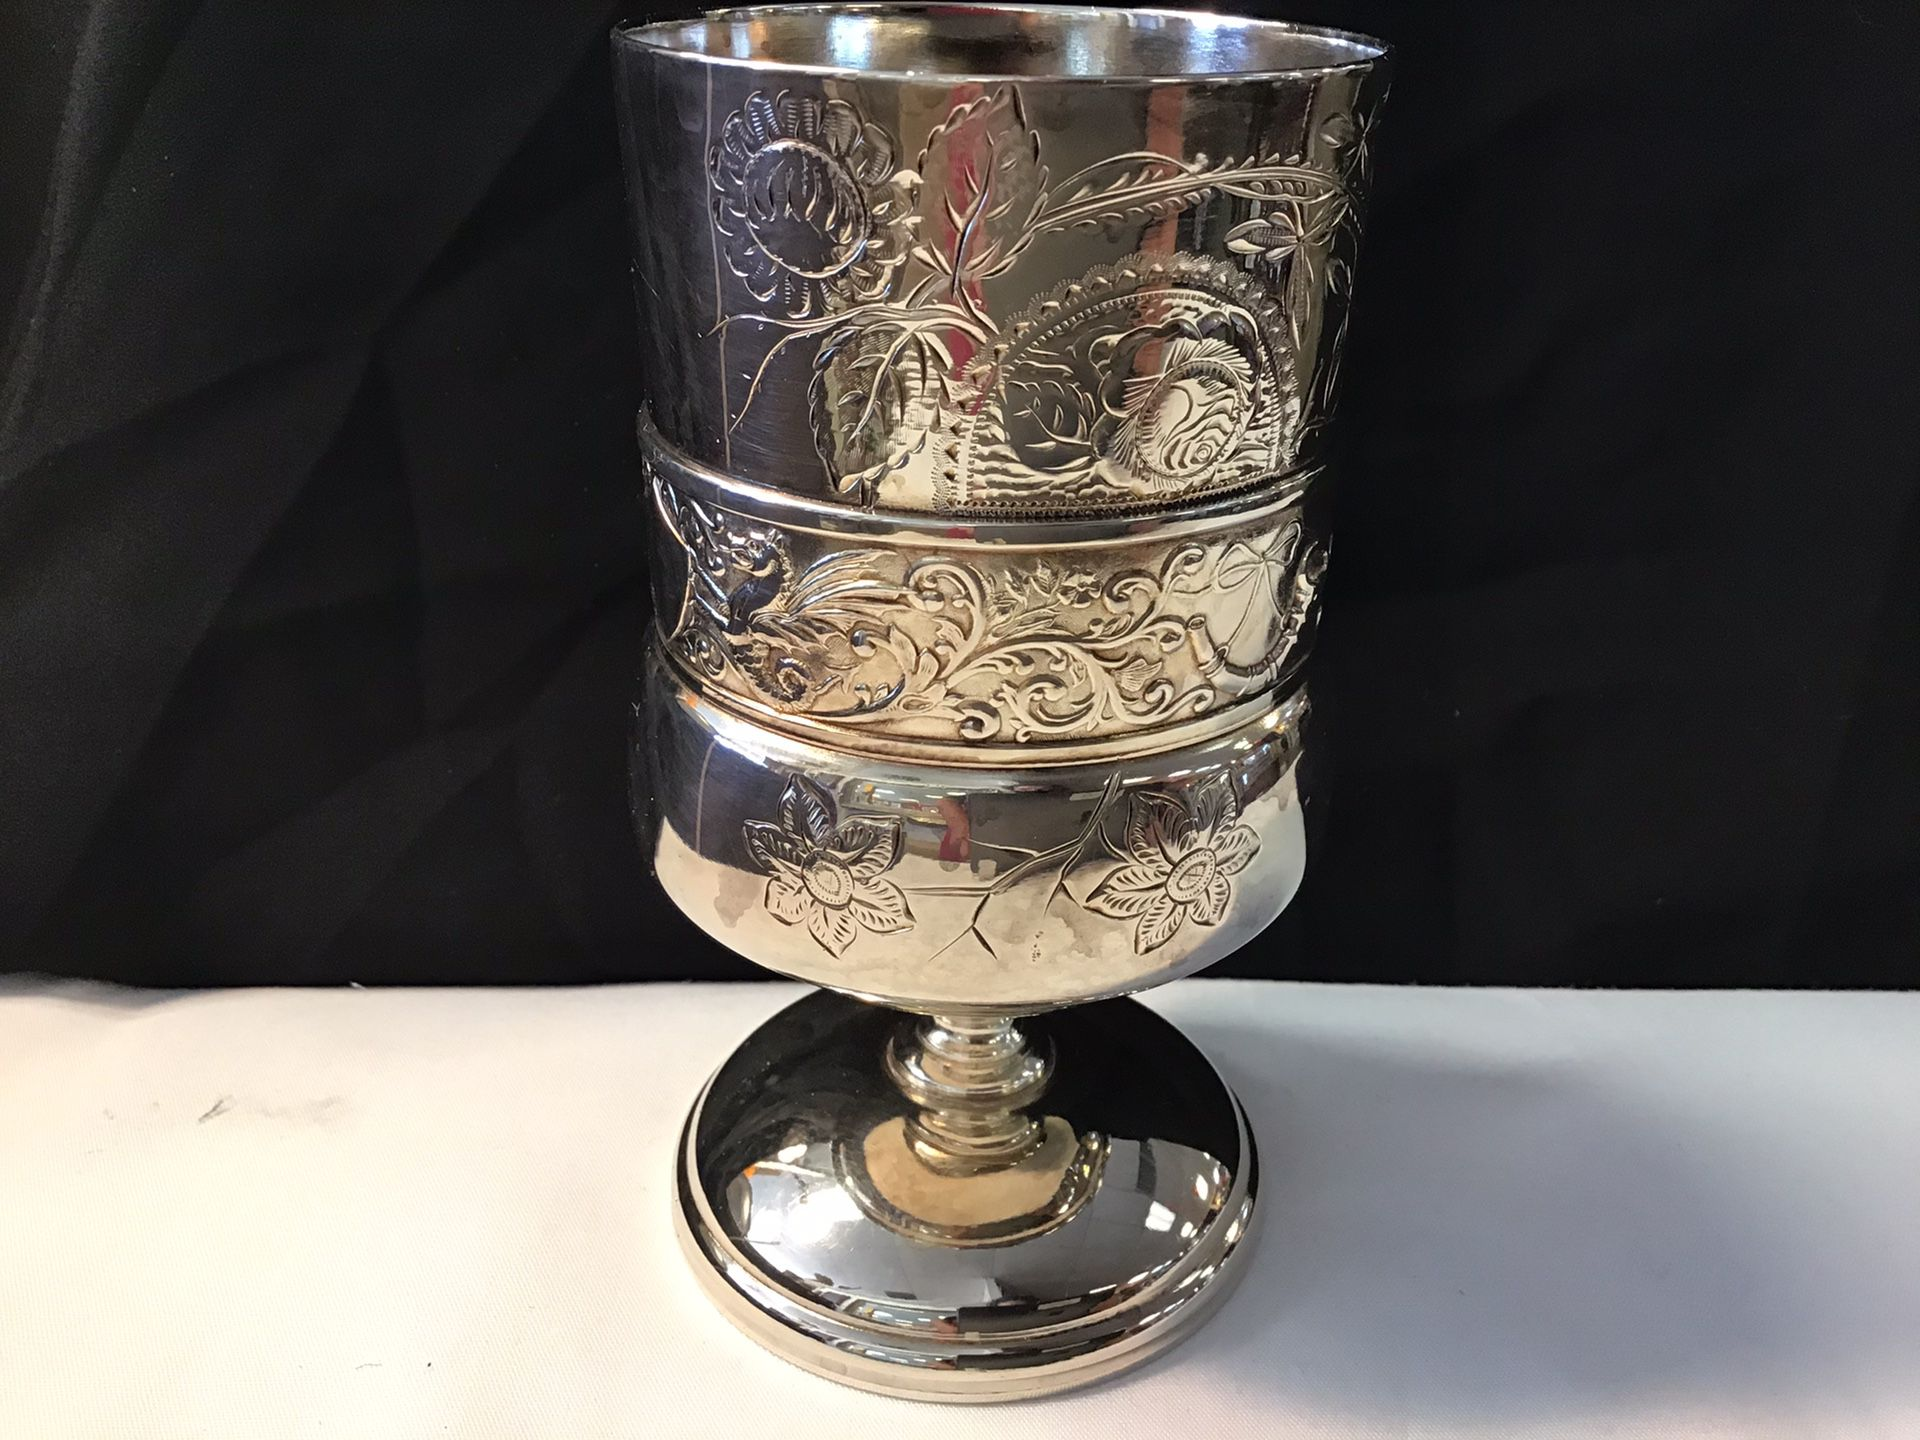 The acme silverplate goblet